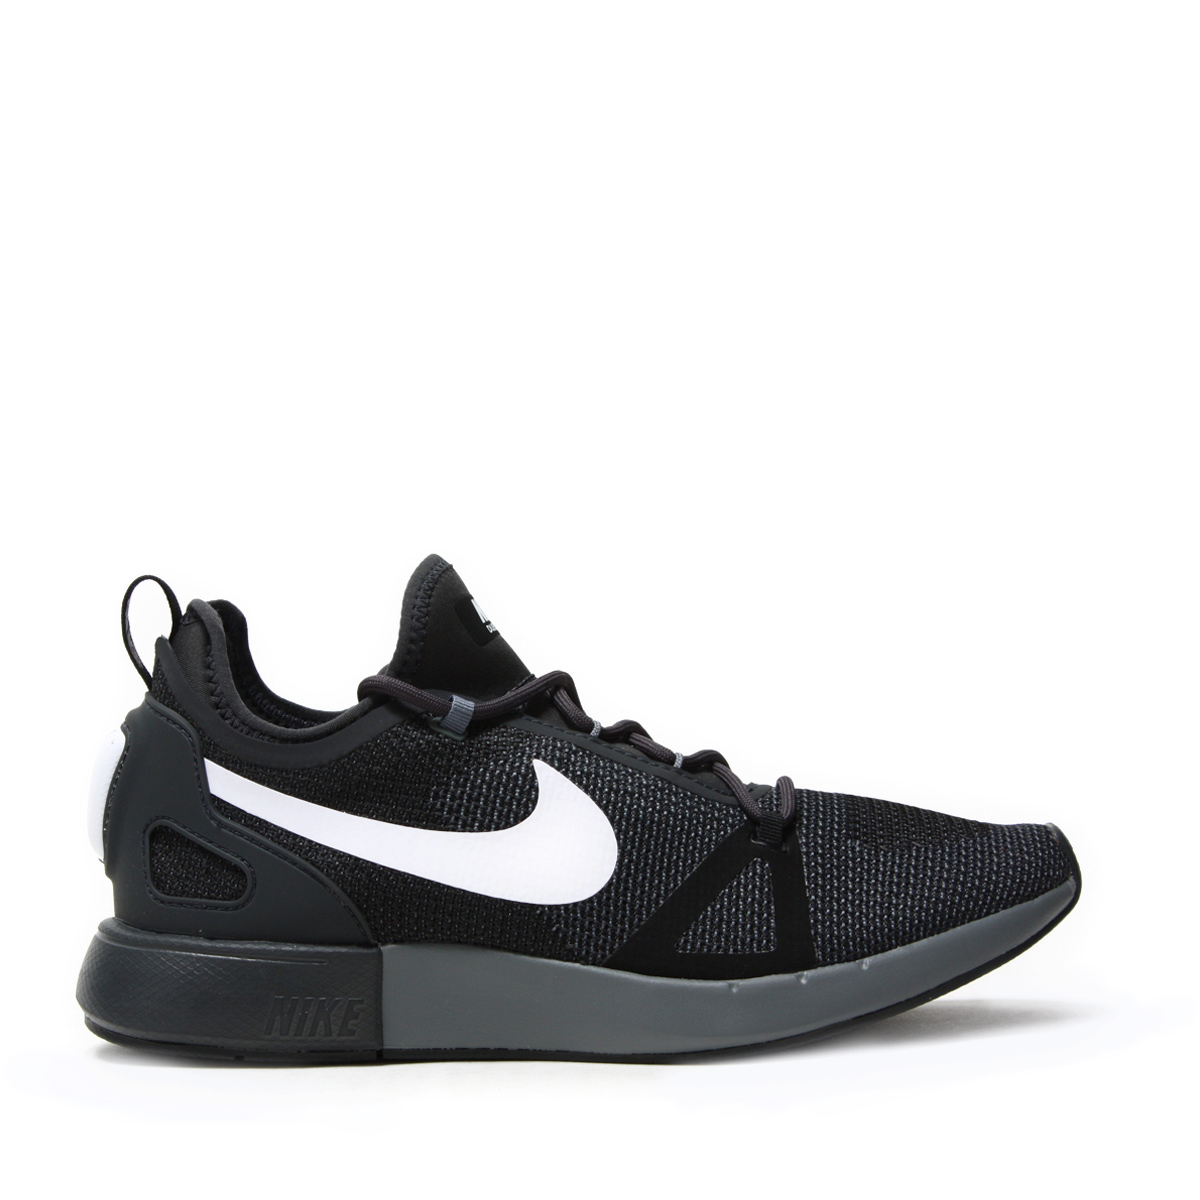 NIKE DUEL RACER (ナイキデュエルレーサー) (BLACK WHITE-ANTHRACITE-COOL GREY) 17FA-S 250dd0c6e